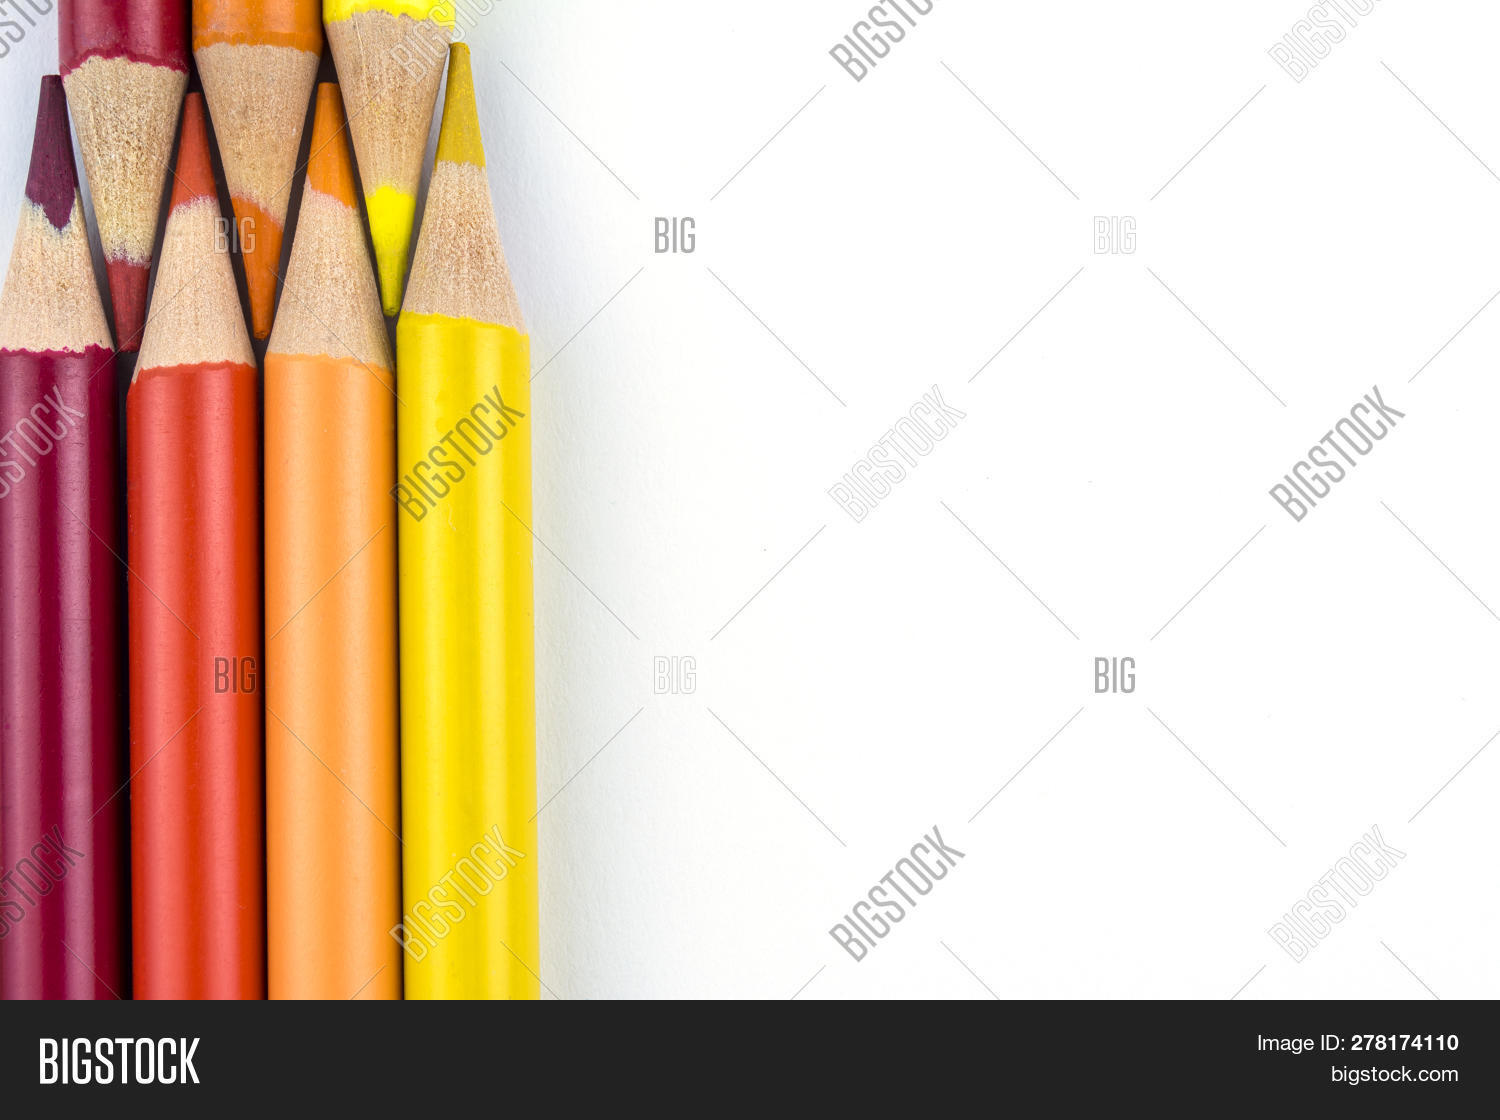 abstract,art,artist,background,blue,bright,collection,color,colored,colorful,colour,concept,crayon,creativity,design,doodle,draw,drawing,education,frame,graphic,green,group,grunge,hand,handmade,illustration,image,isolated,object,office,orange,paint,palette,pen,pencil,pink,rainbow,red,row,school,sharp,sketching,spectrum,stroke,texture,variation,vibrant,white,yellow